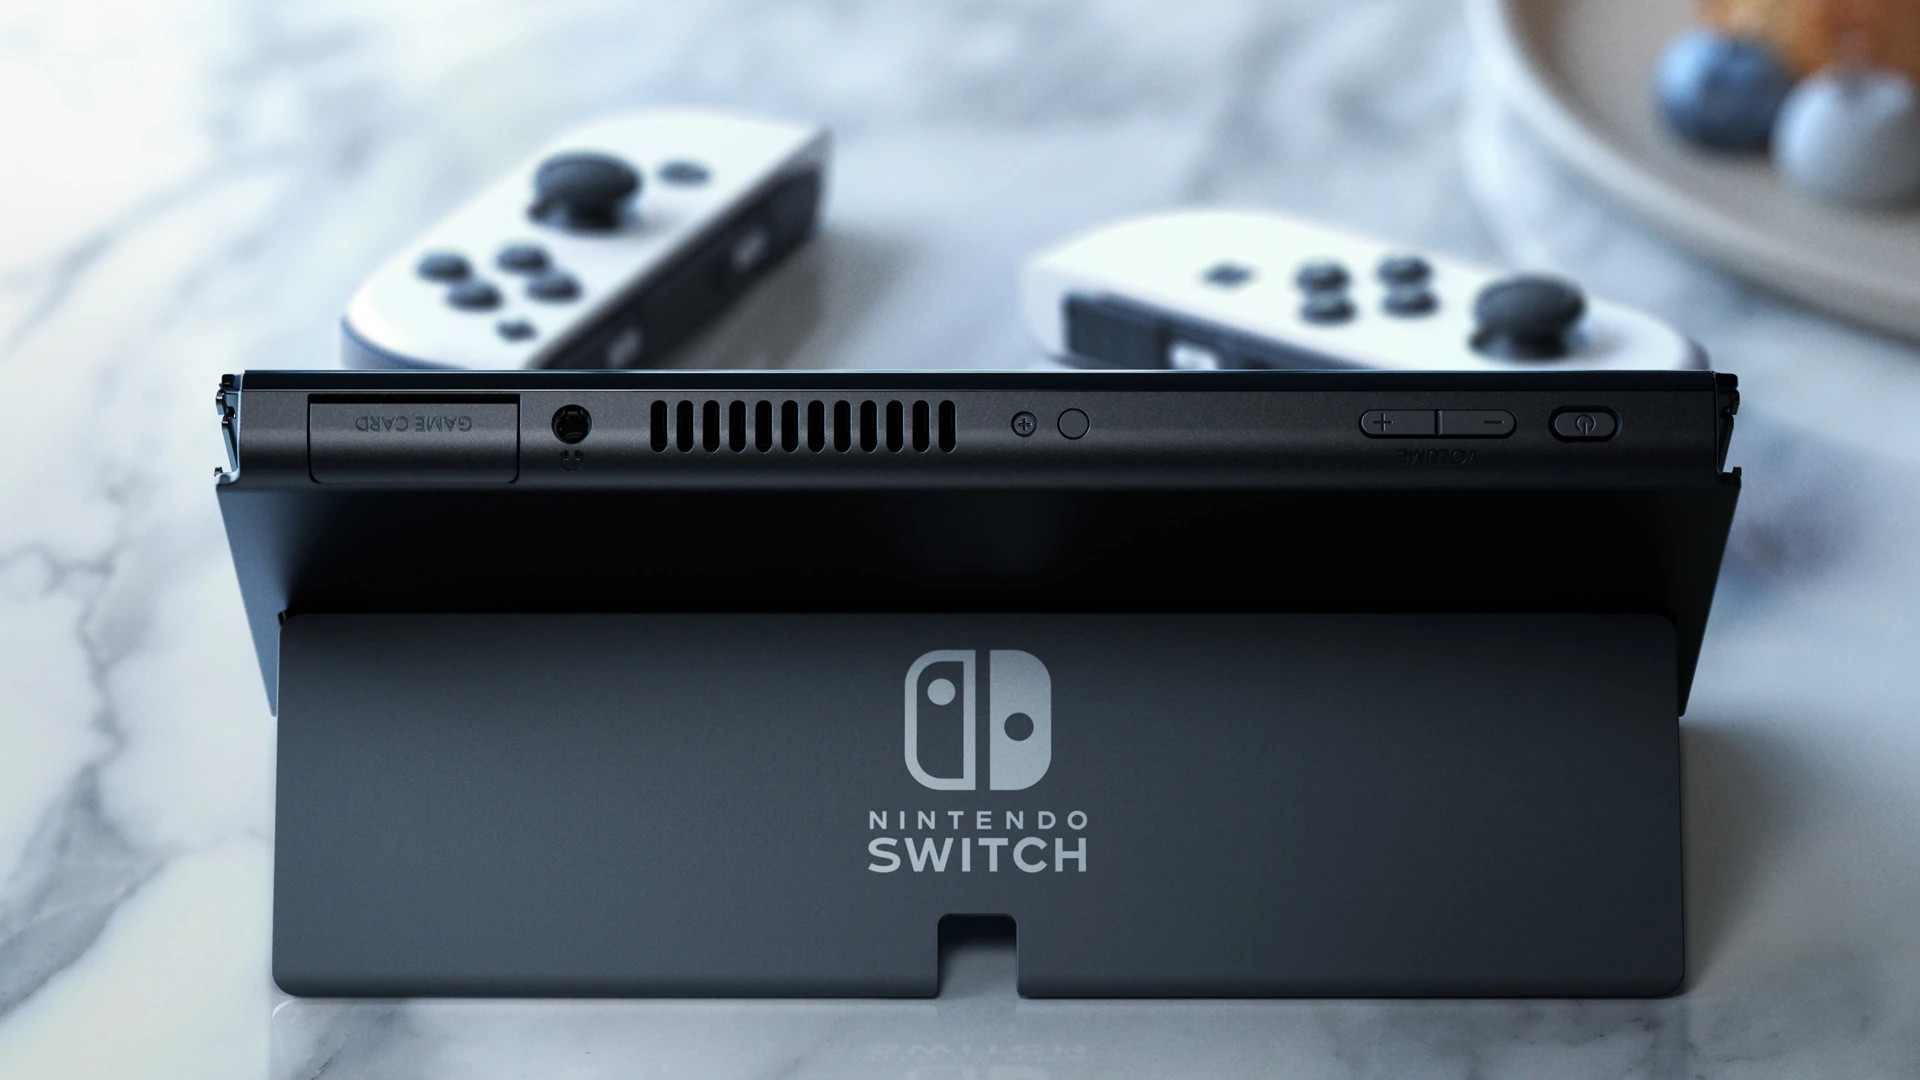 Nintendo Switch OLED on a marble table in tabletop mode